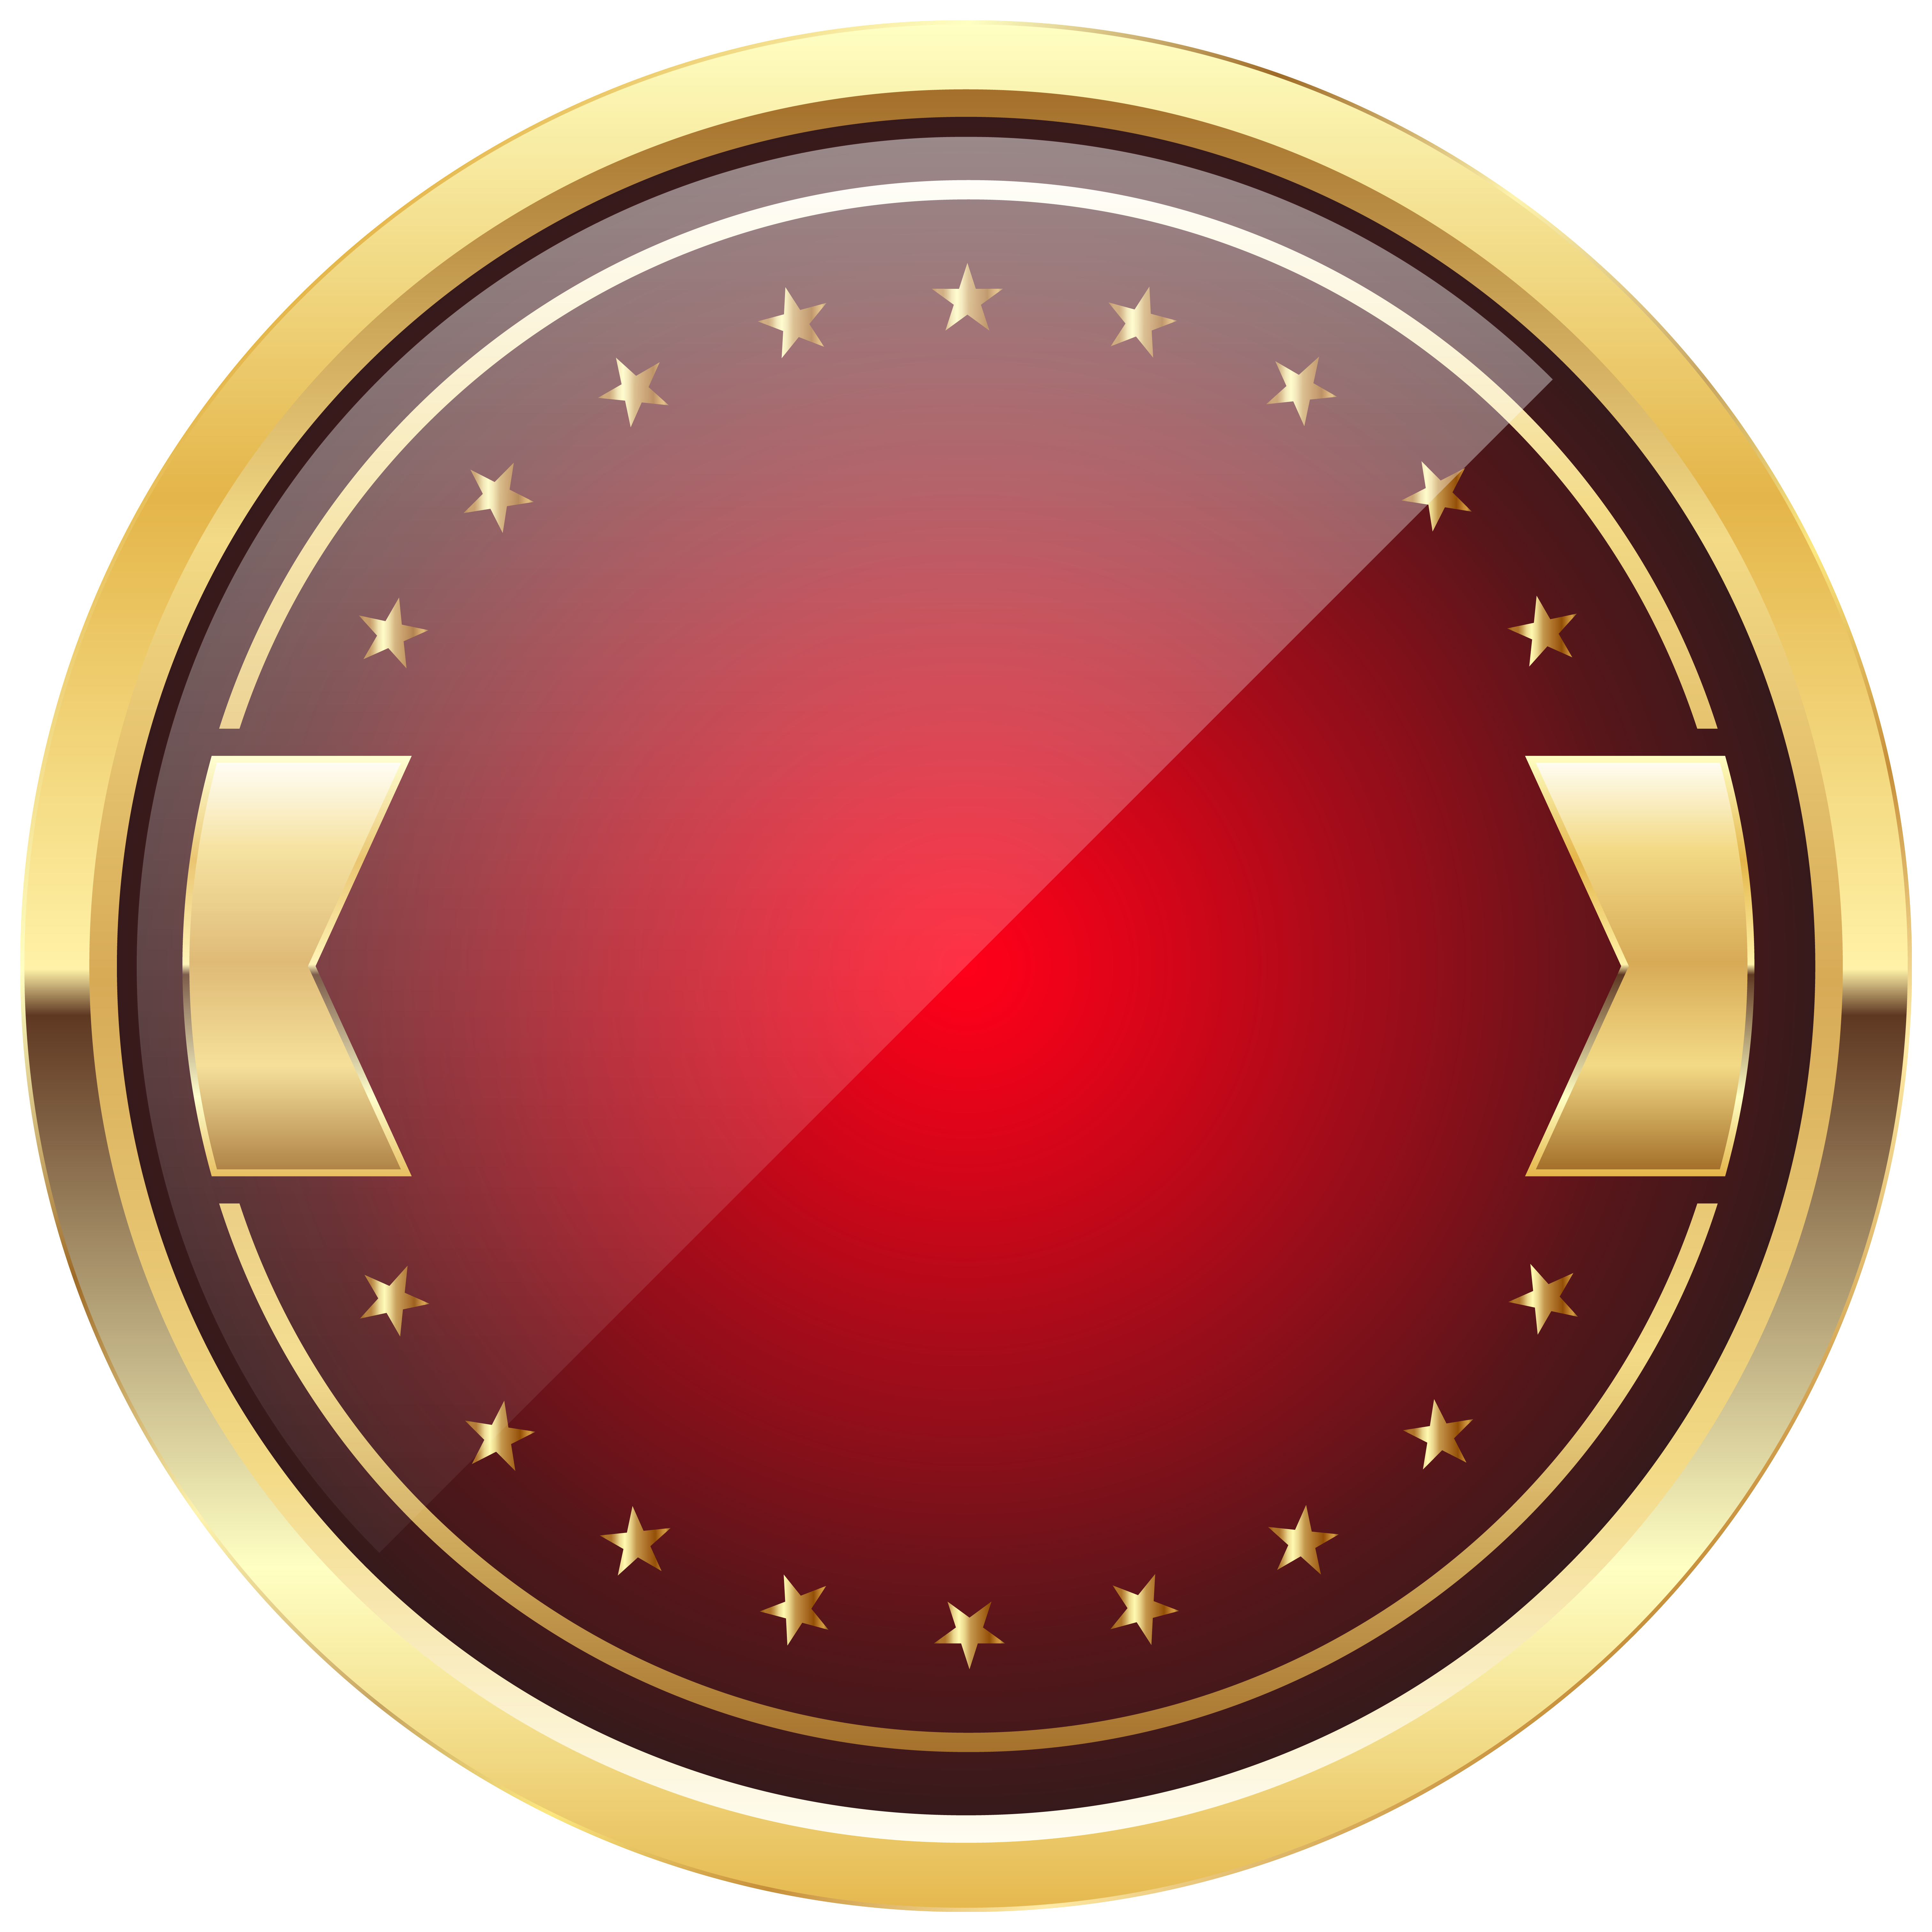 Red and Gold Badge Template PNG Clip Art Image.